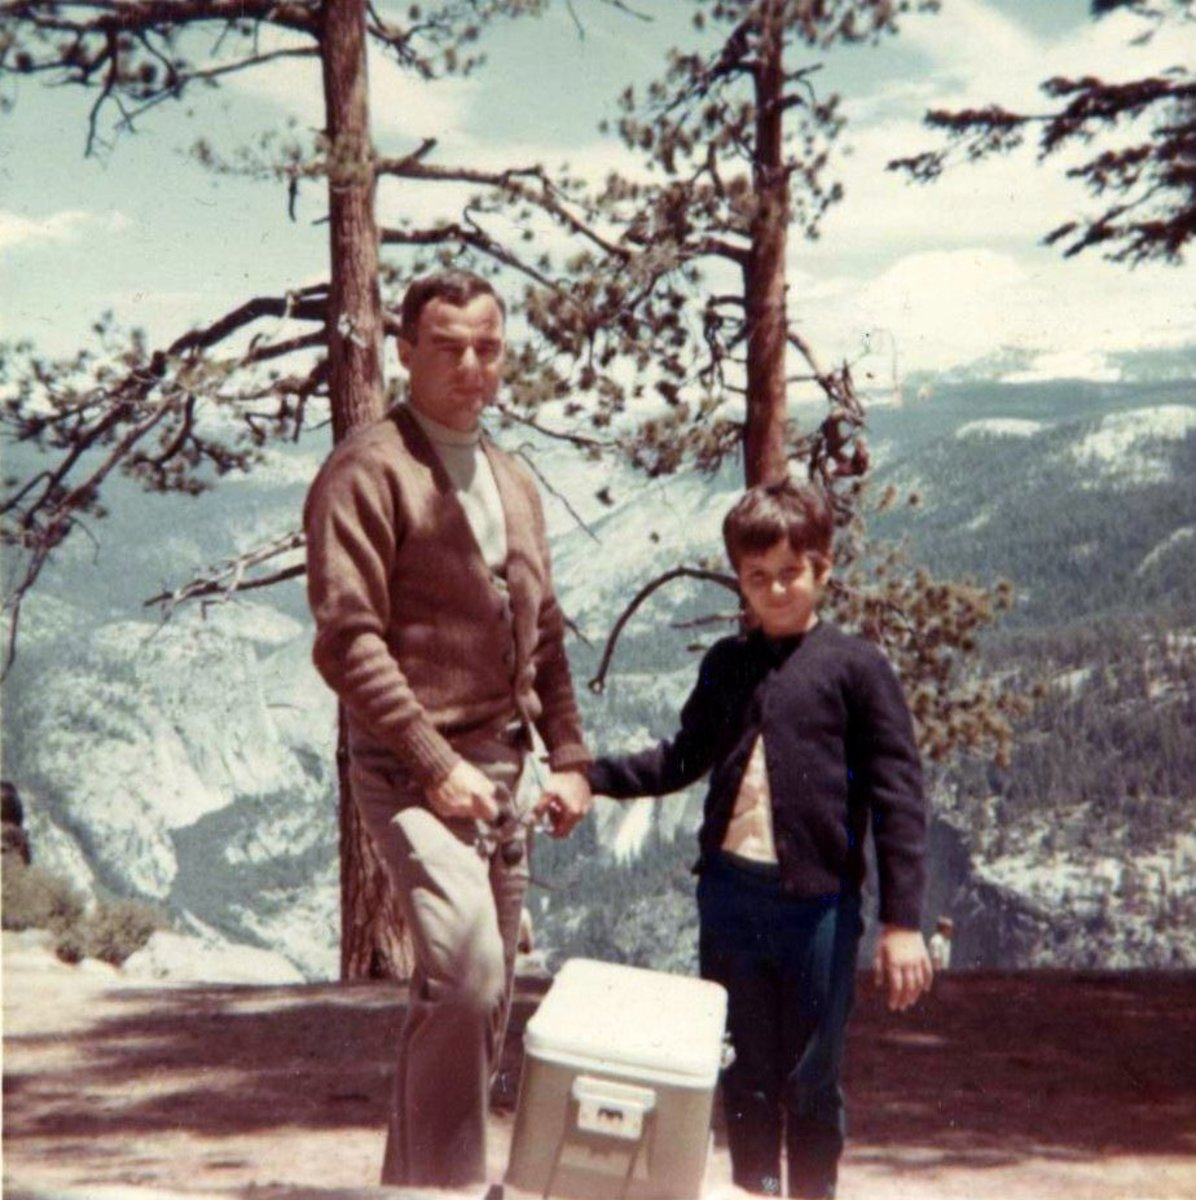 Bob Impson and I in California. We stopped on our way from Thailand to Oklahoma in 1967.